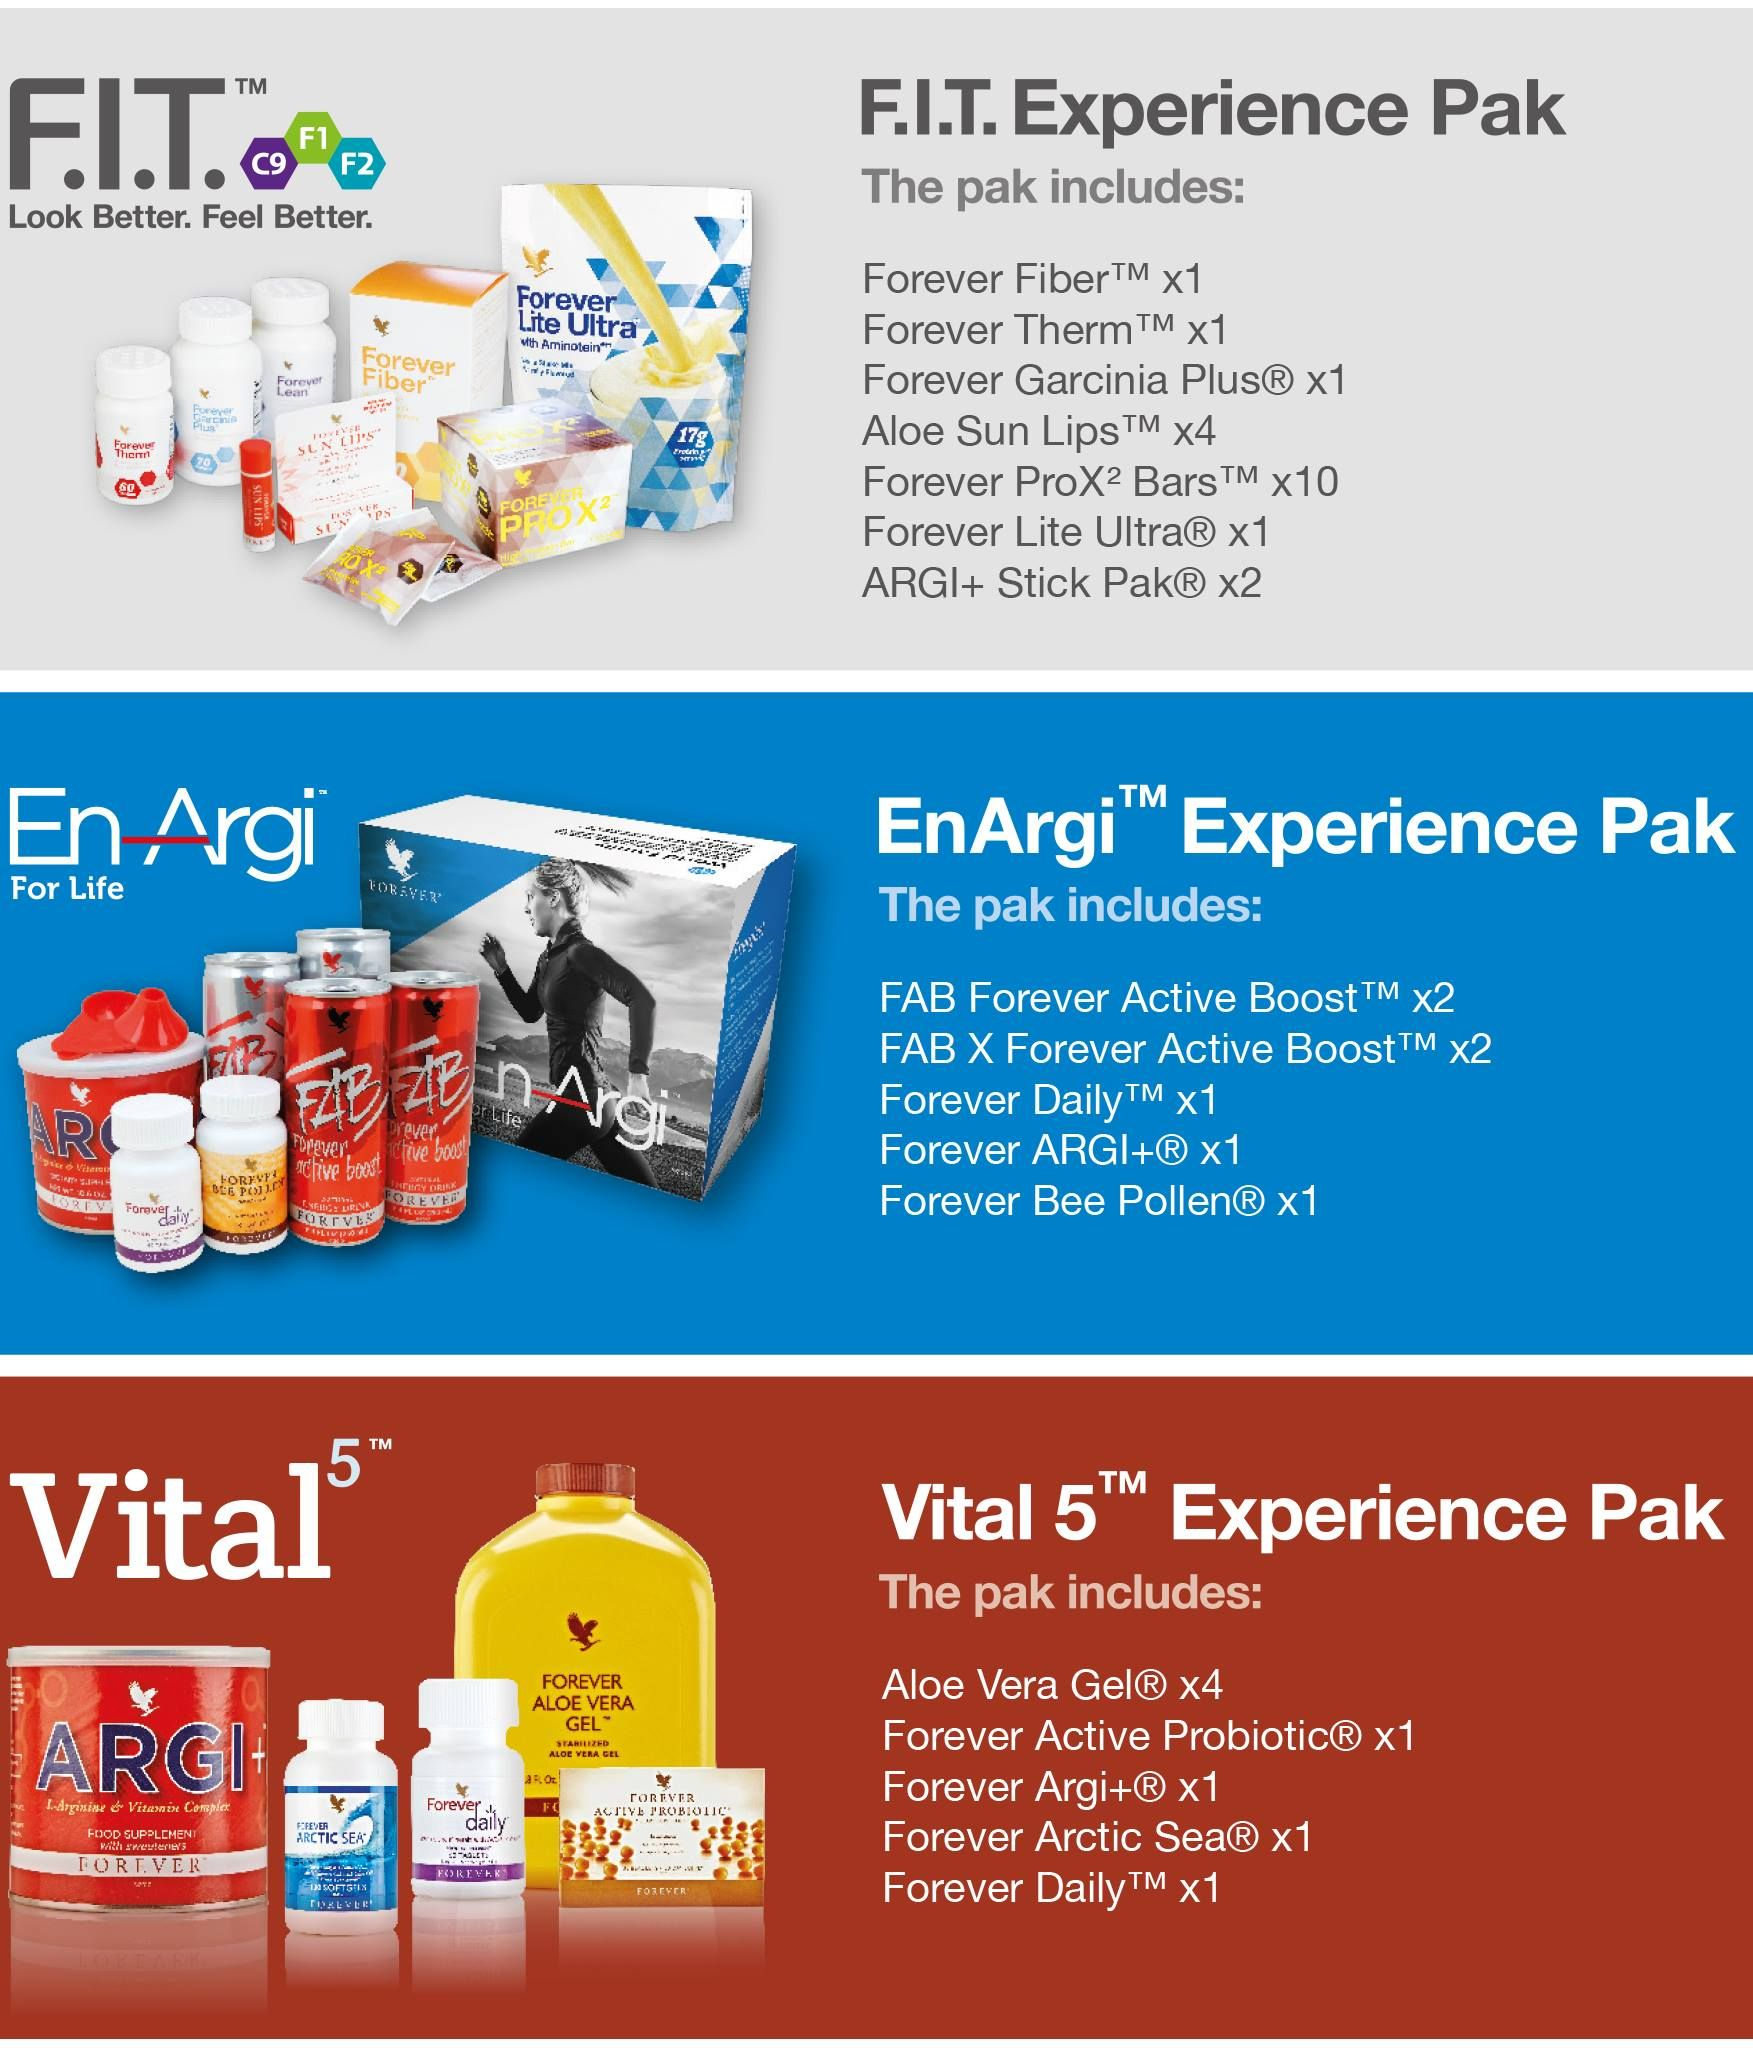 Some Amazing Products Coming Your Way Forever Forever Living